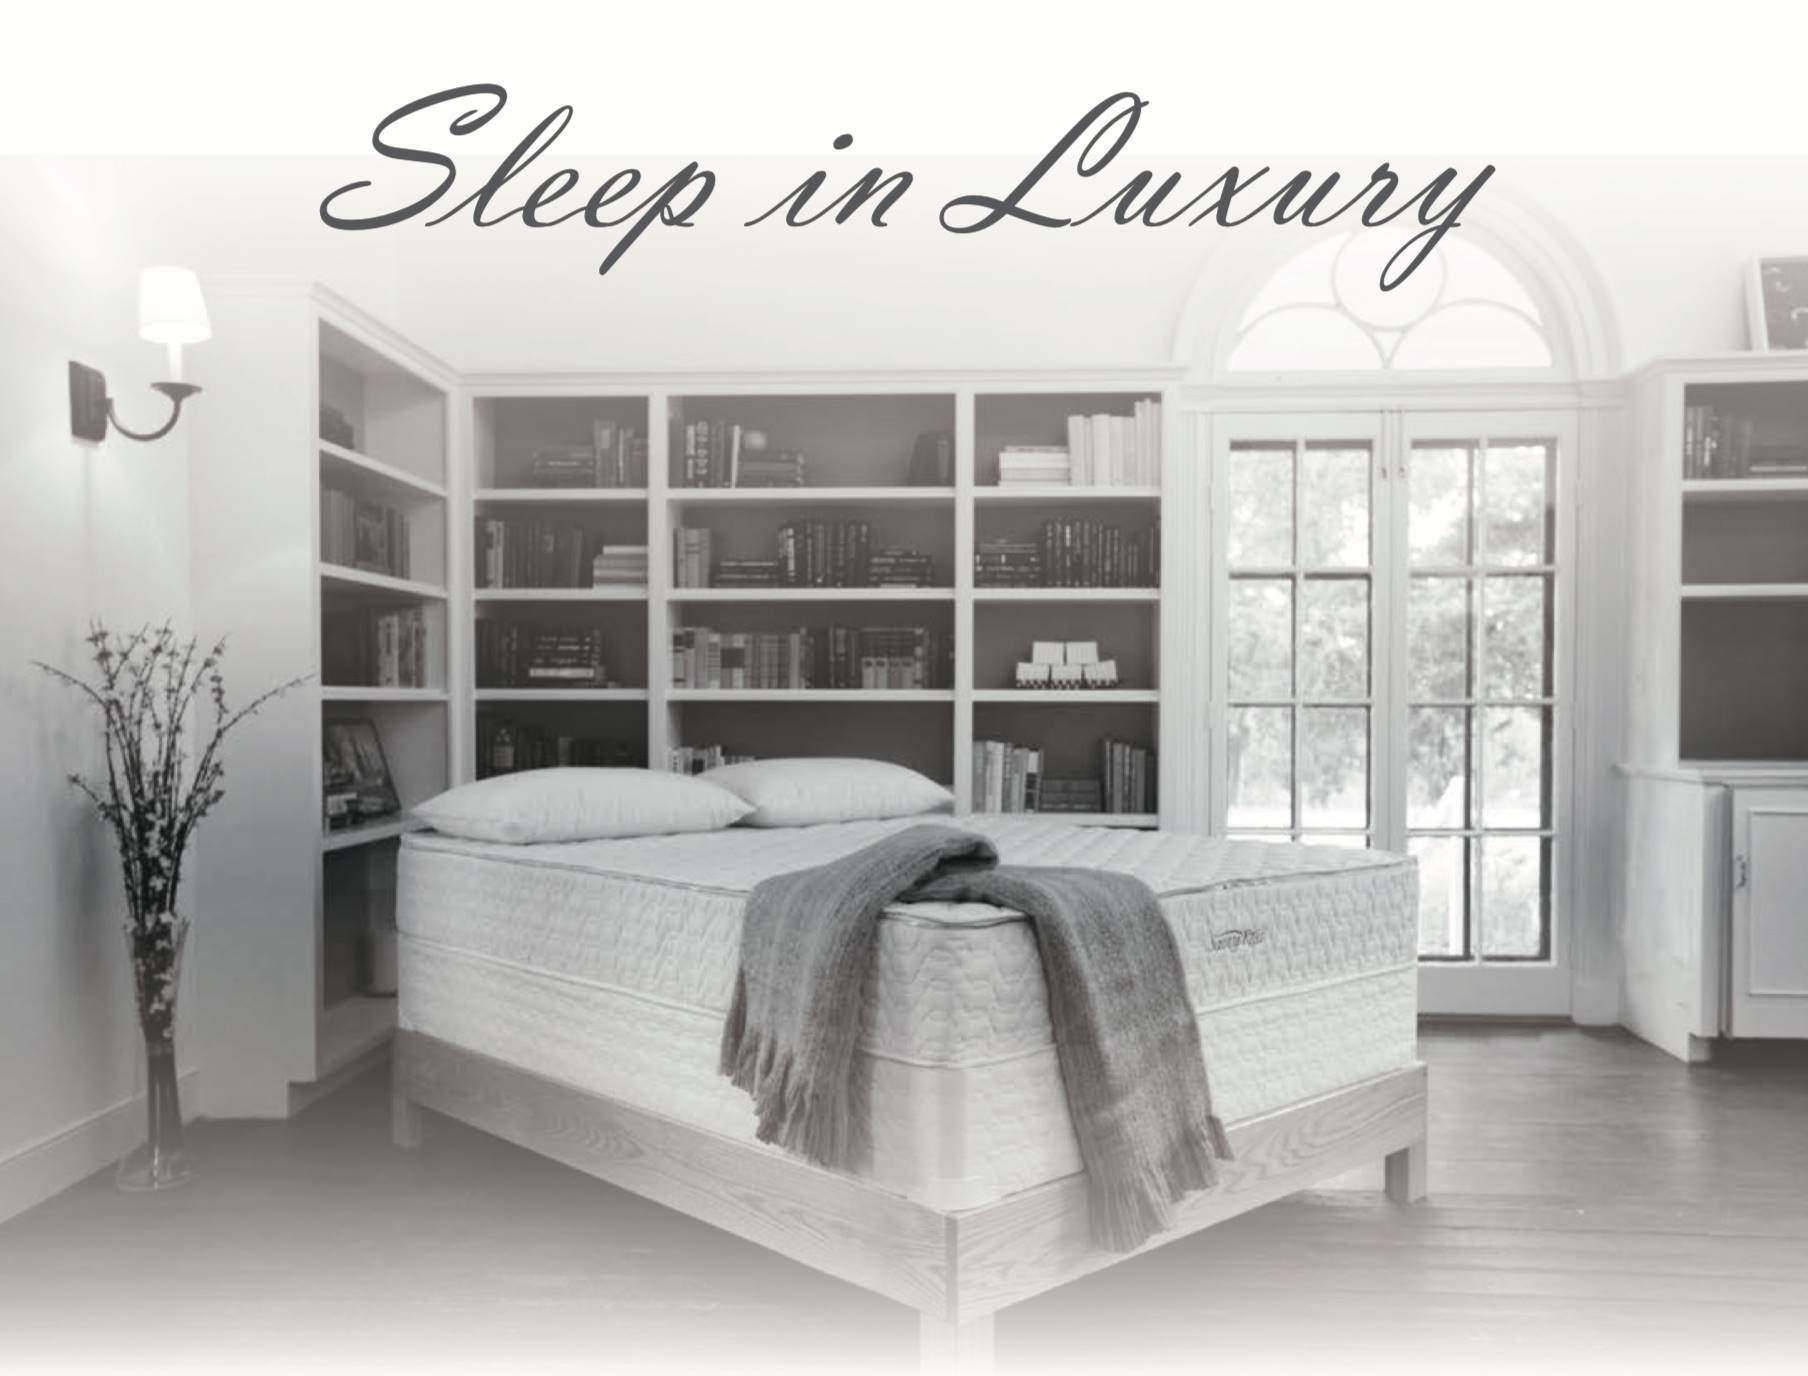 Tucked In Organics – Natural Vita Talalay Latex Mattress Store In Amherst Nh